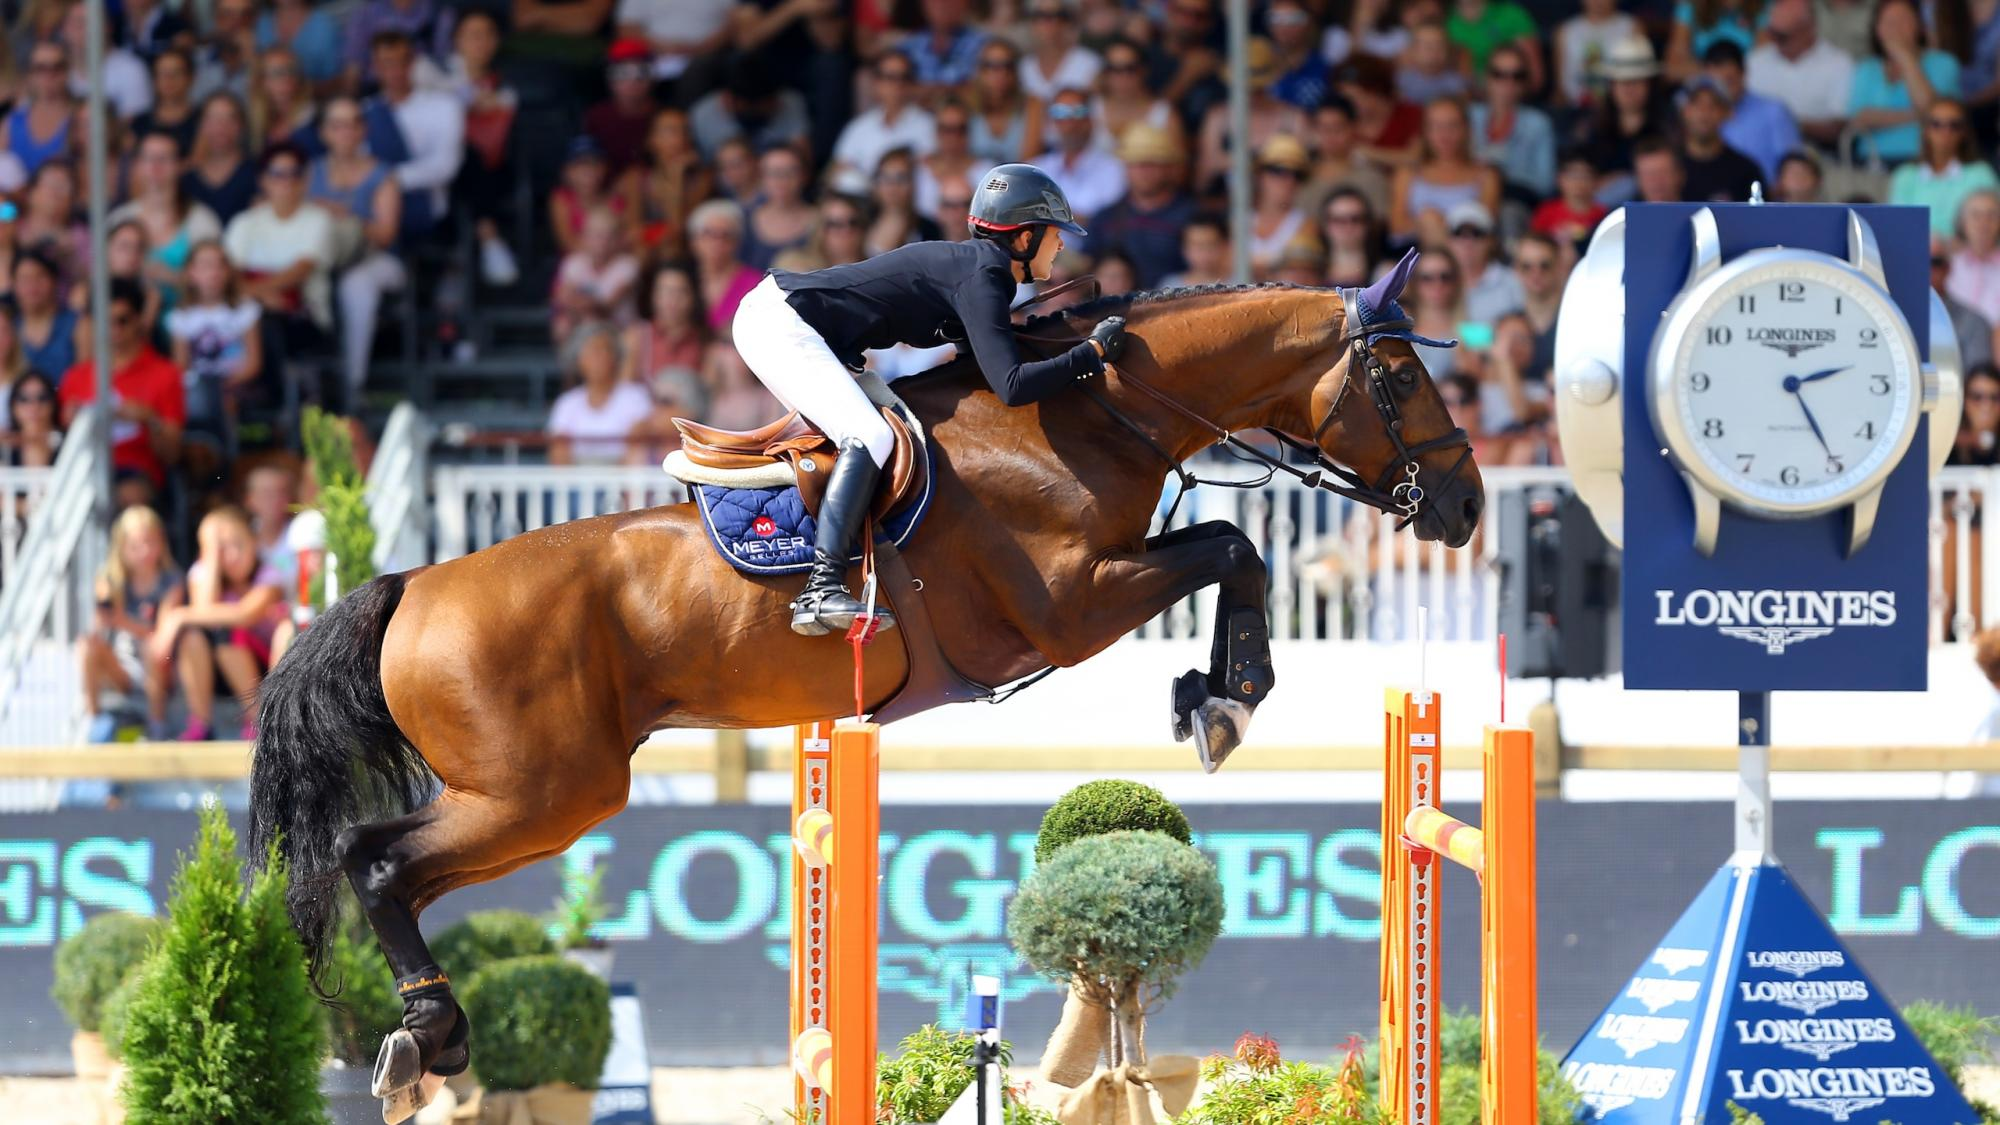 International Longines Horse Show of Lausanne